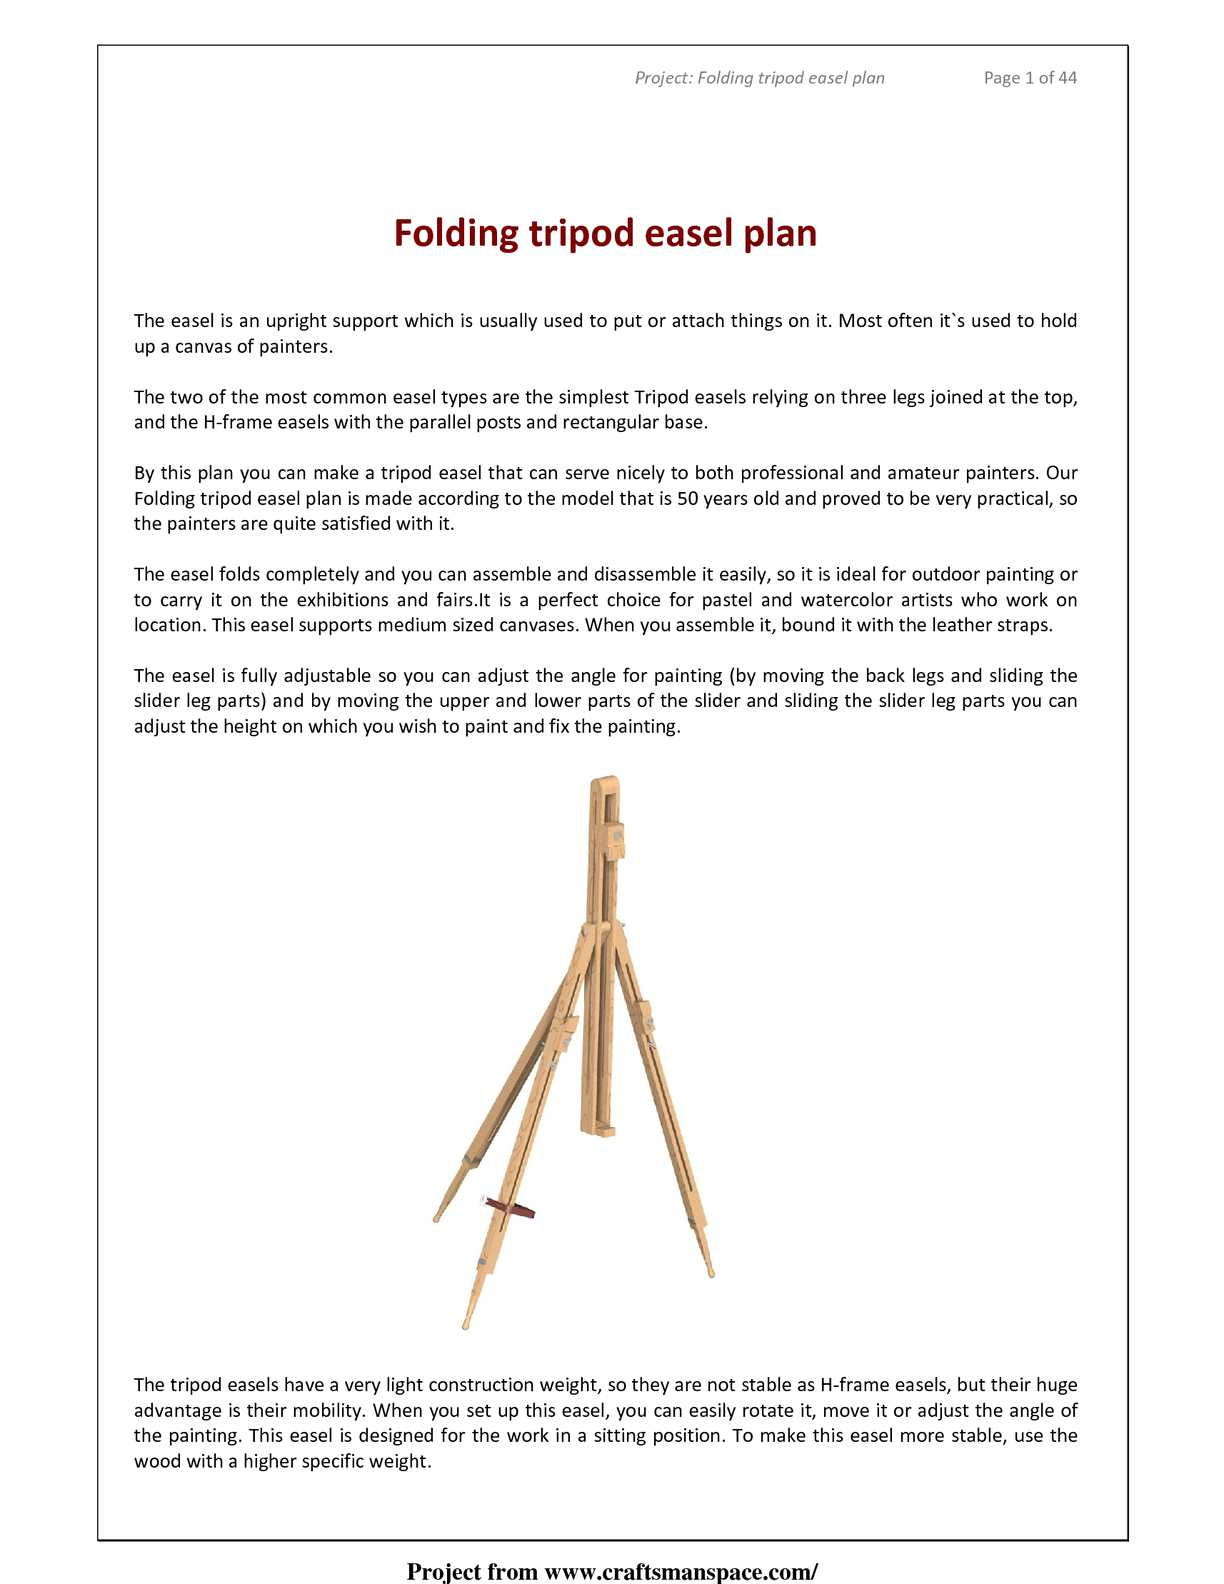 Calaméo - How to make folding tripod easel - Free woodworking plan